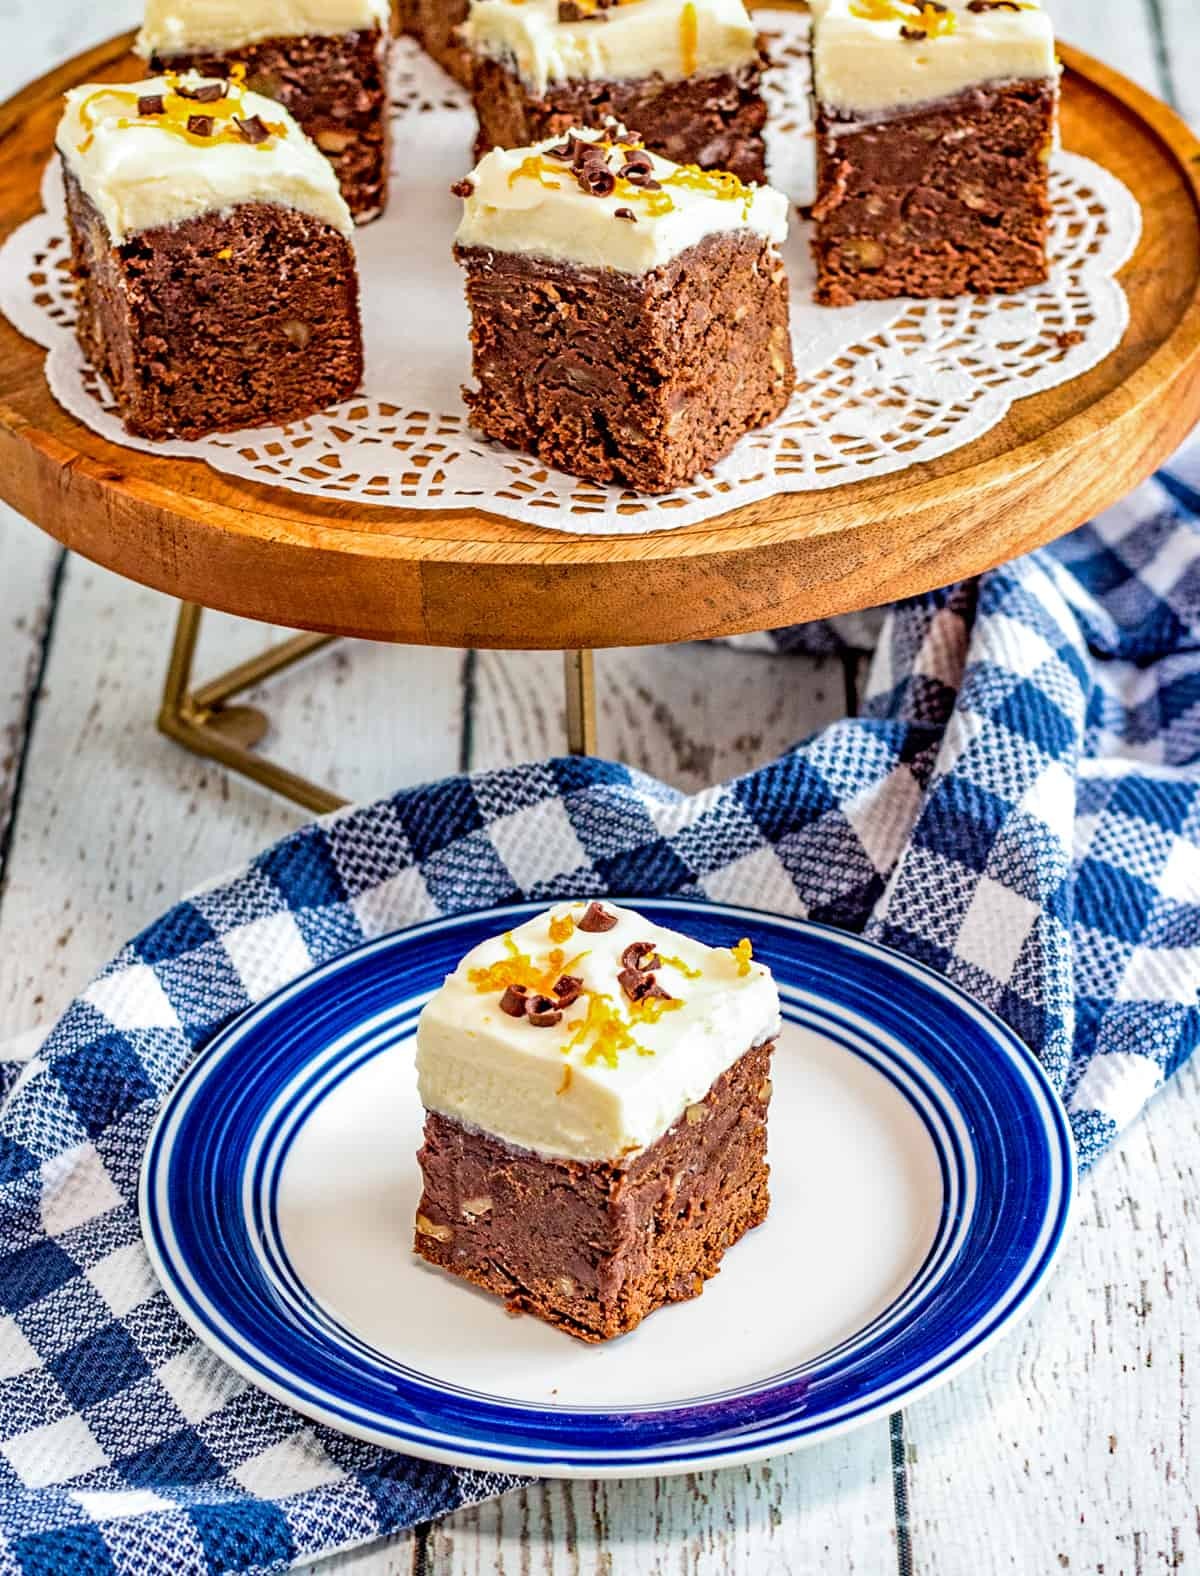 Chocolate Orange Brownie on white and blue plate with cut brownies on cake stand